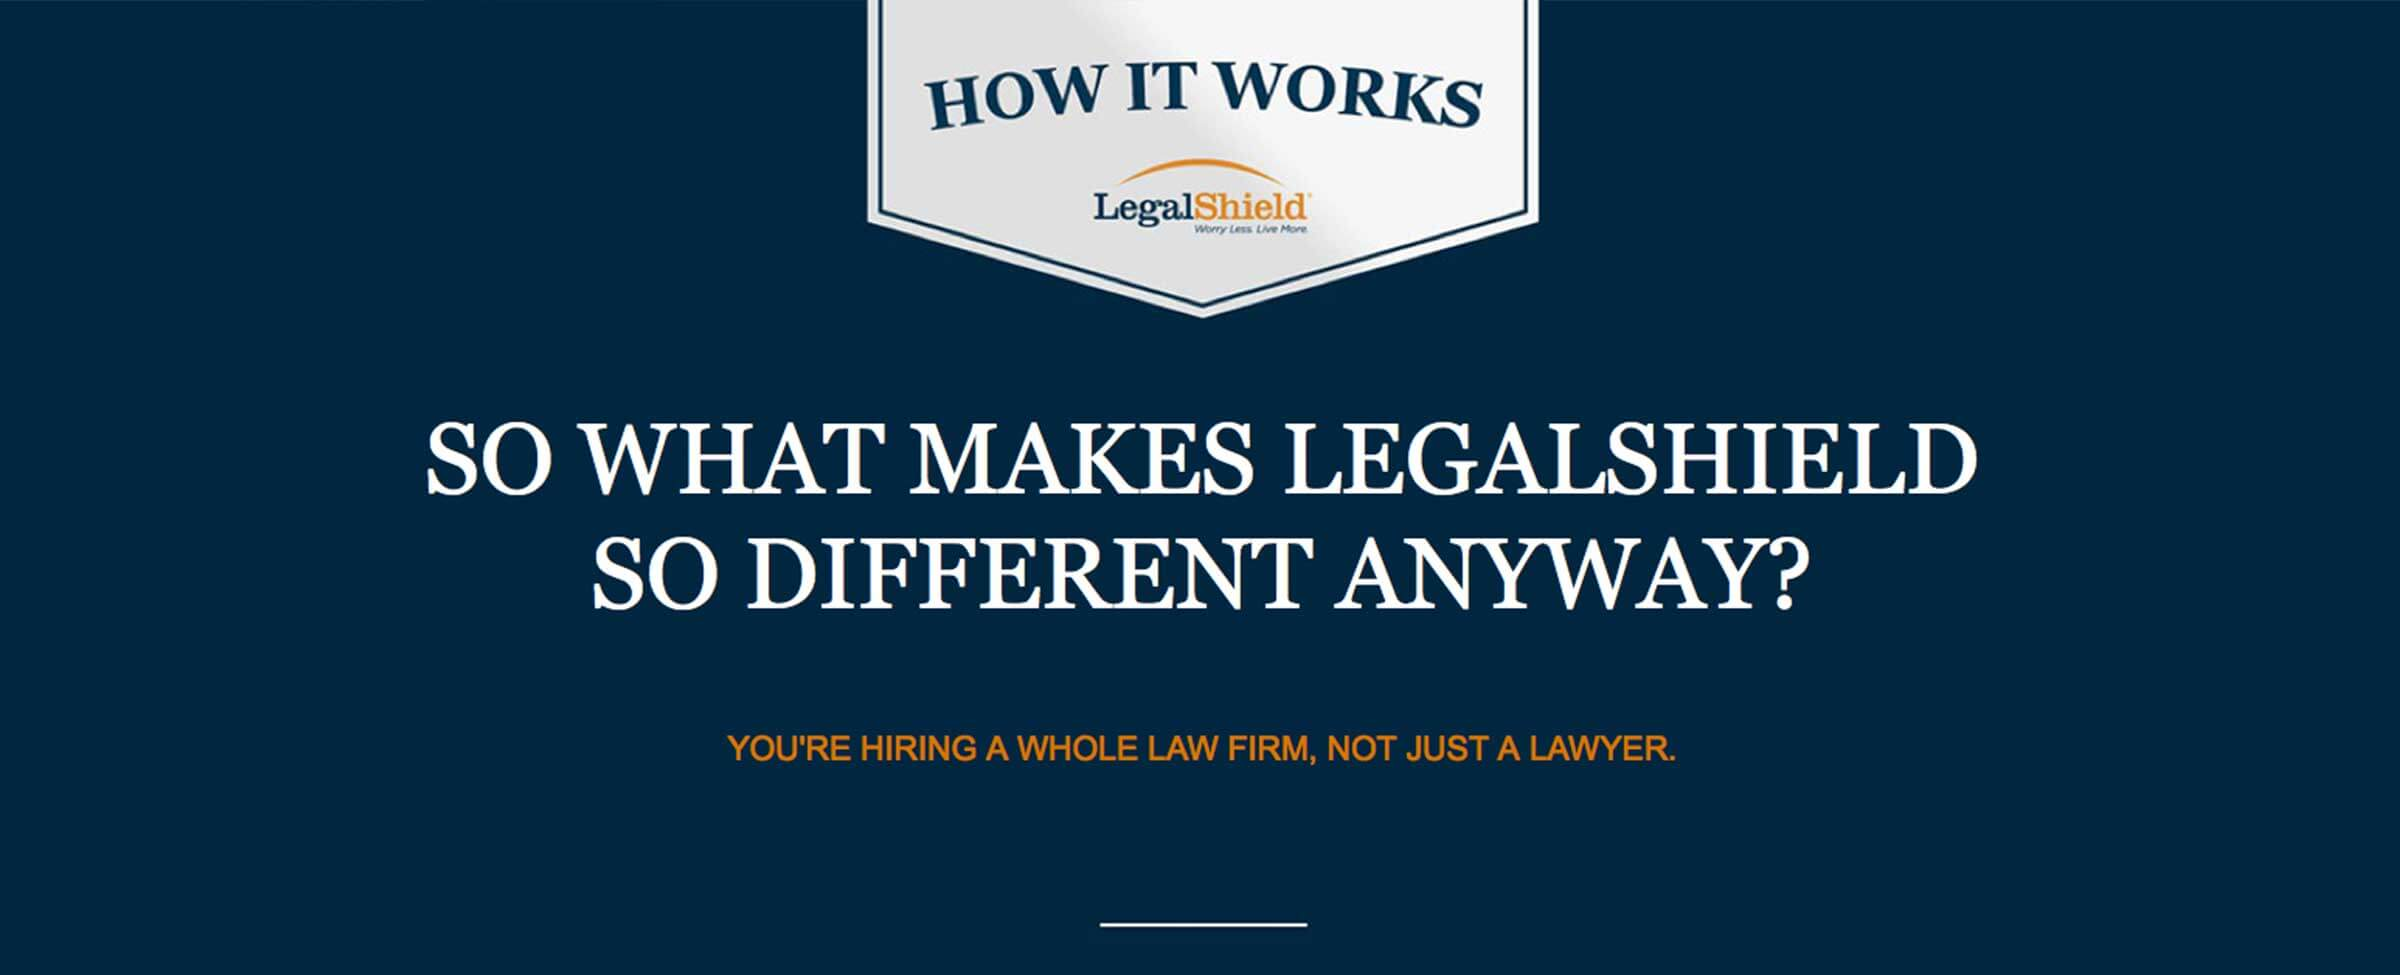 is legal shield a scam photo